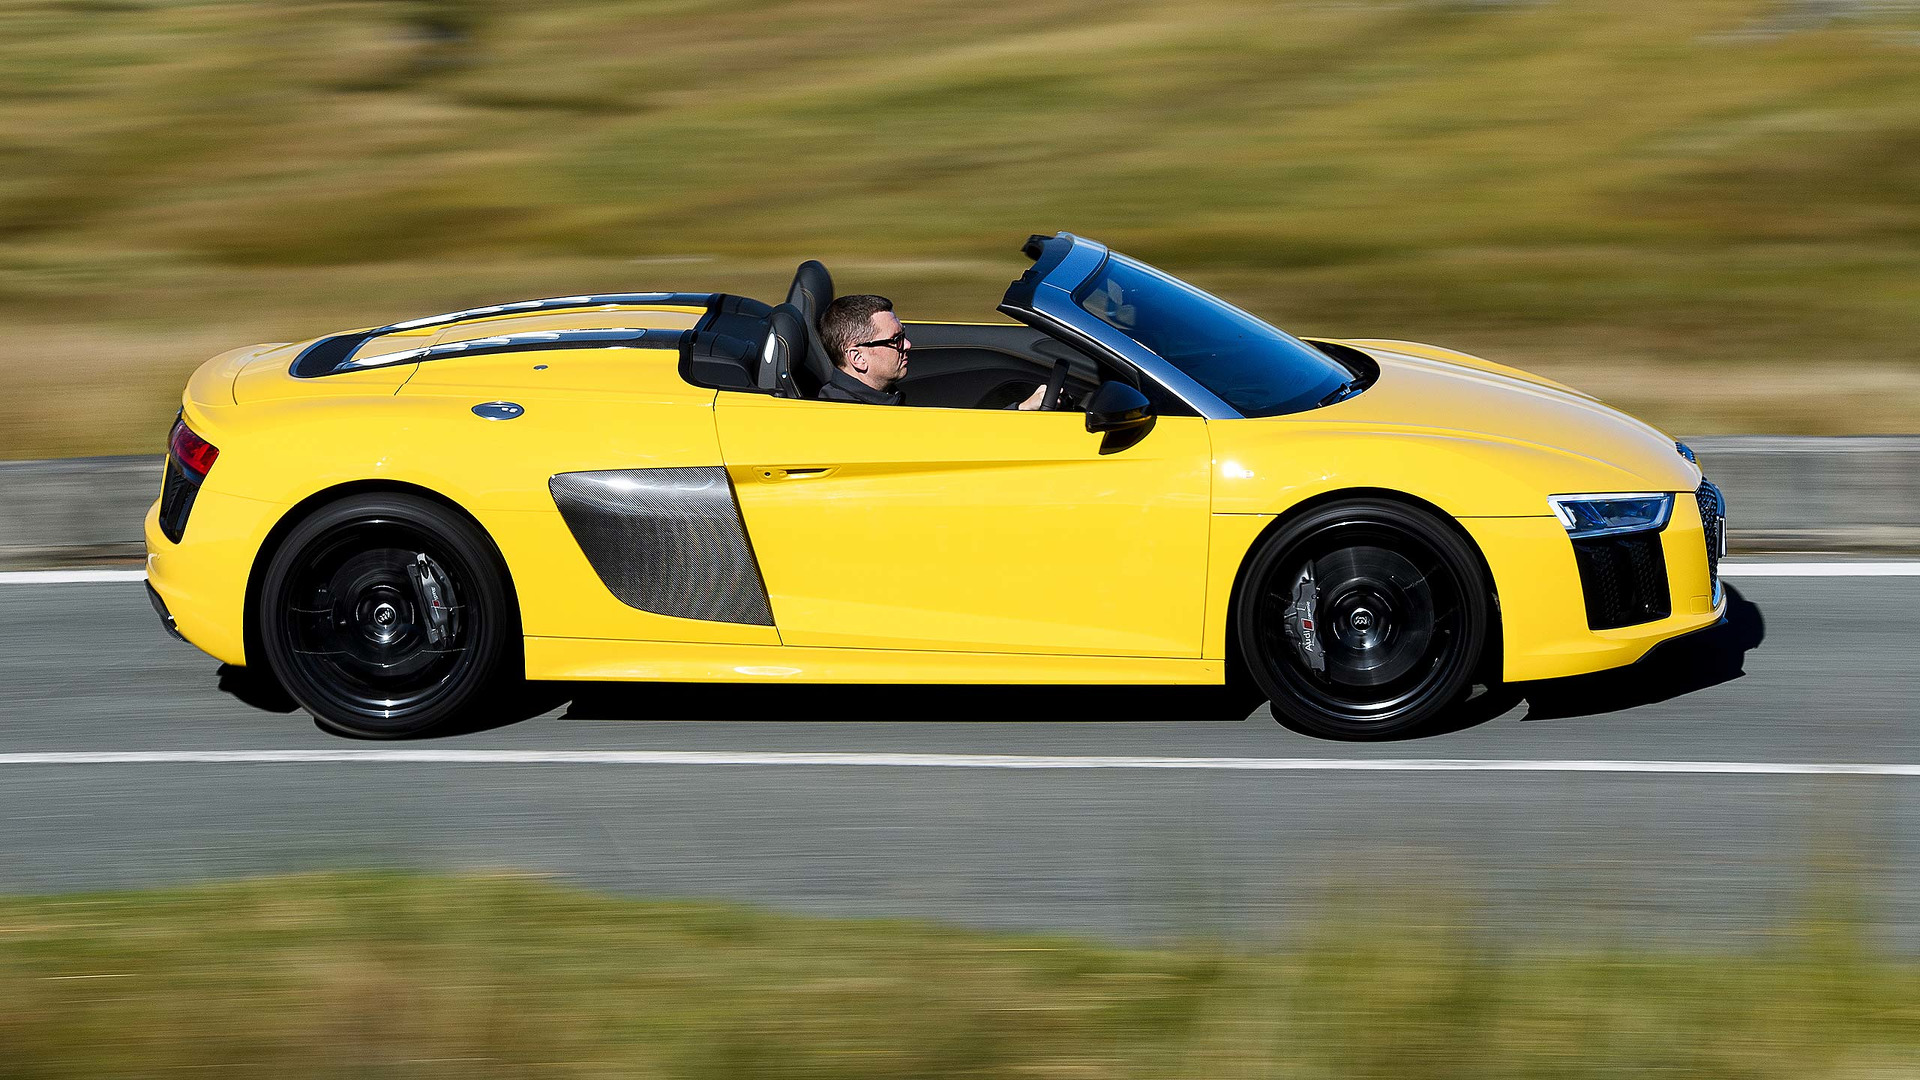 2017 audi r8 review: usable yet spectacular